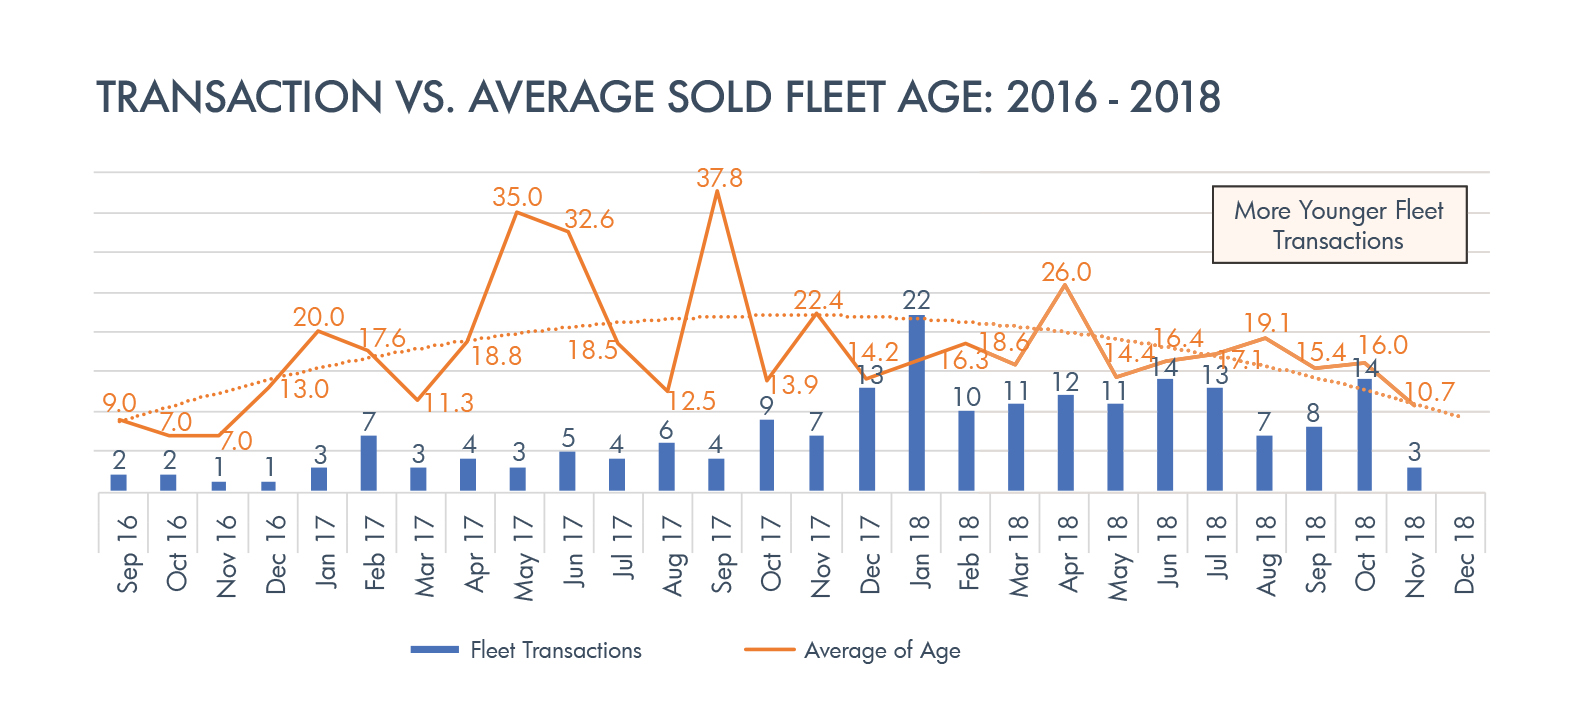 Data source: ASG and Jetnet.    Note:  The monitored pre-owned models include: S76C+/C++, S92, Bell 206, Bell 212, Bell 412, Bell 429, AW139, H225, H135, H145 & H155